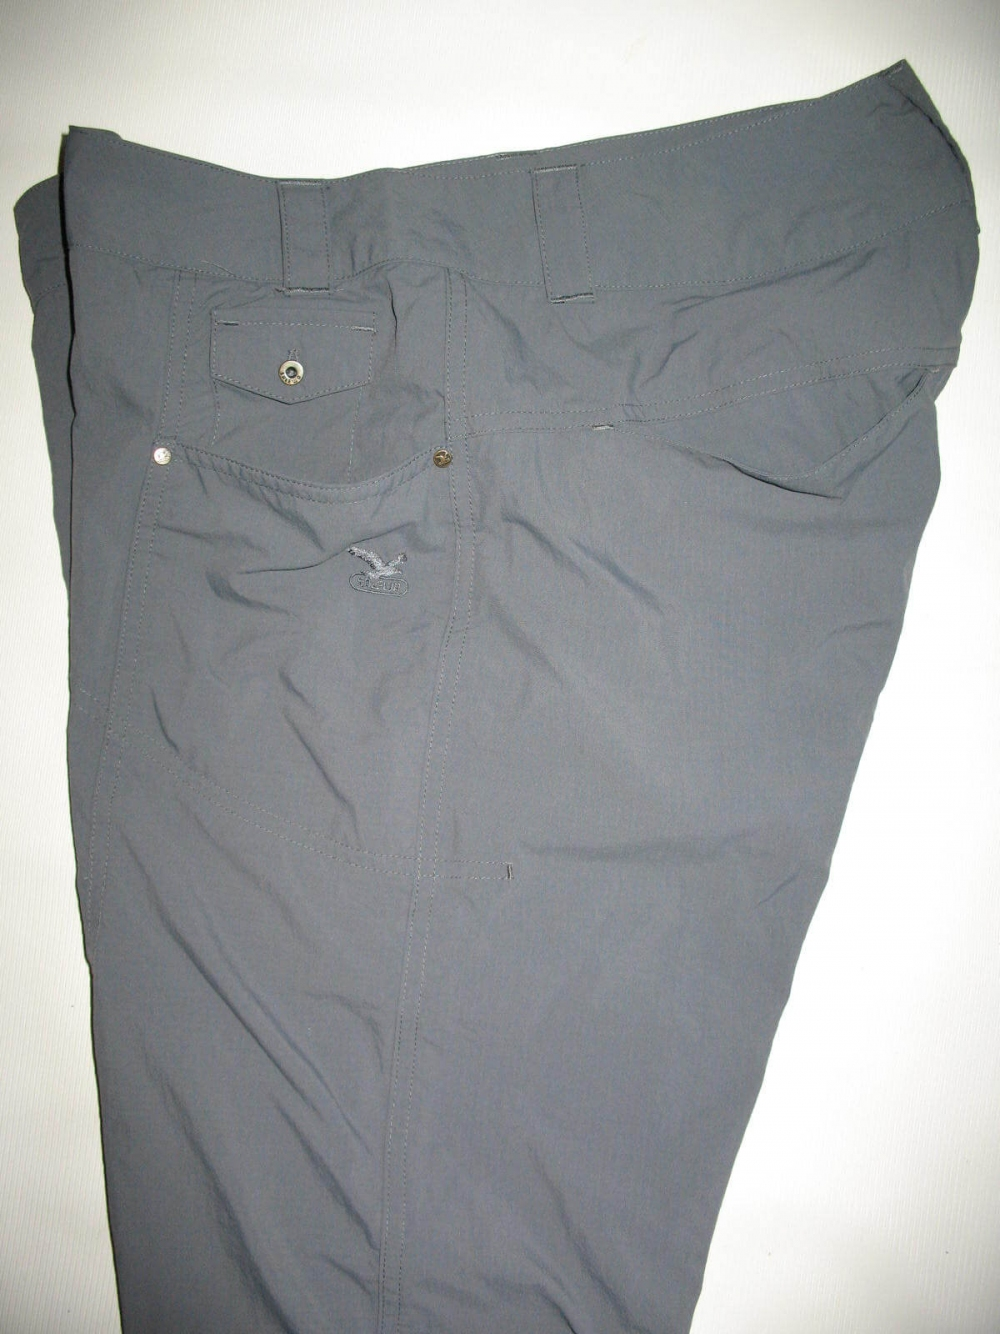 Бриджи SALEWA nola dry 3/4 pants lady (размер XL/L) - 3